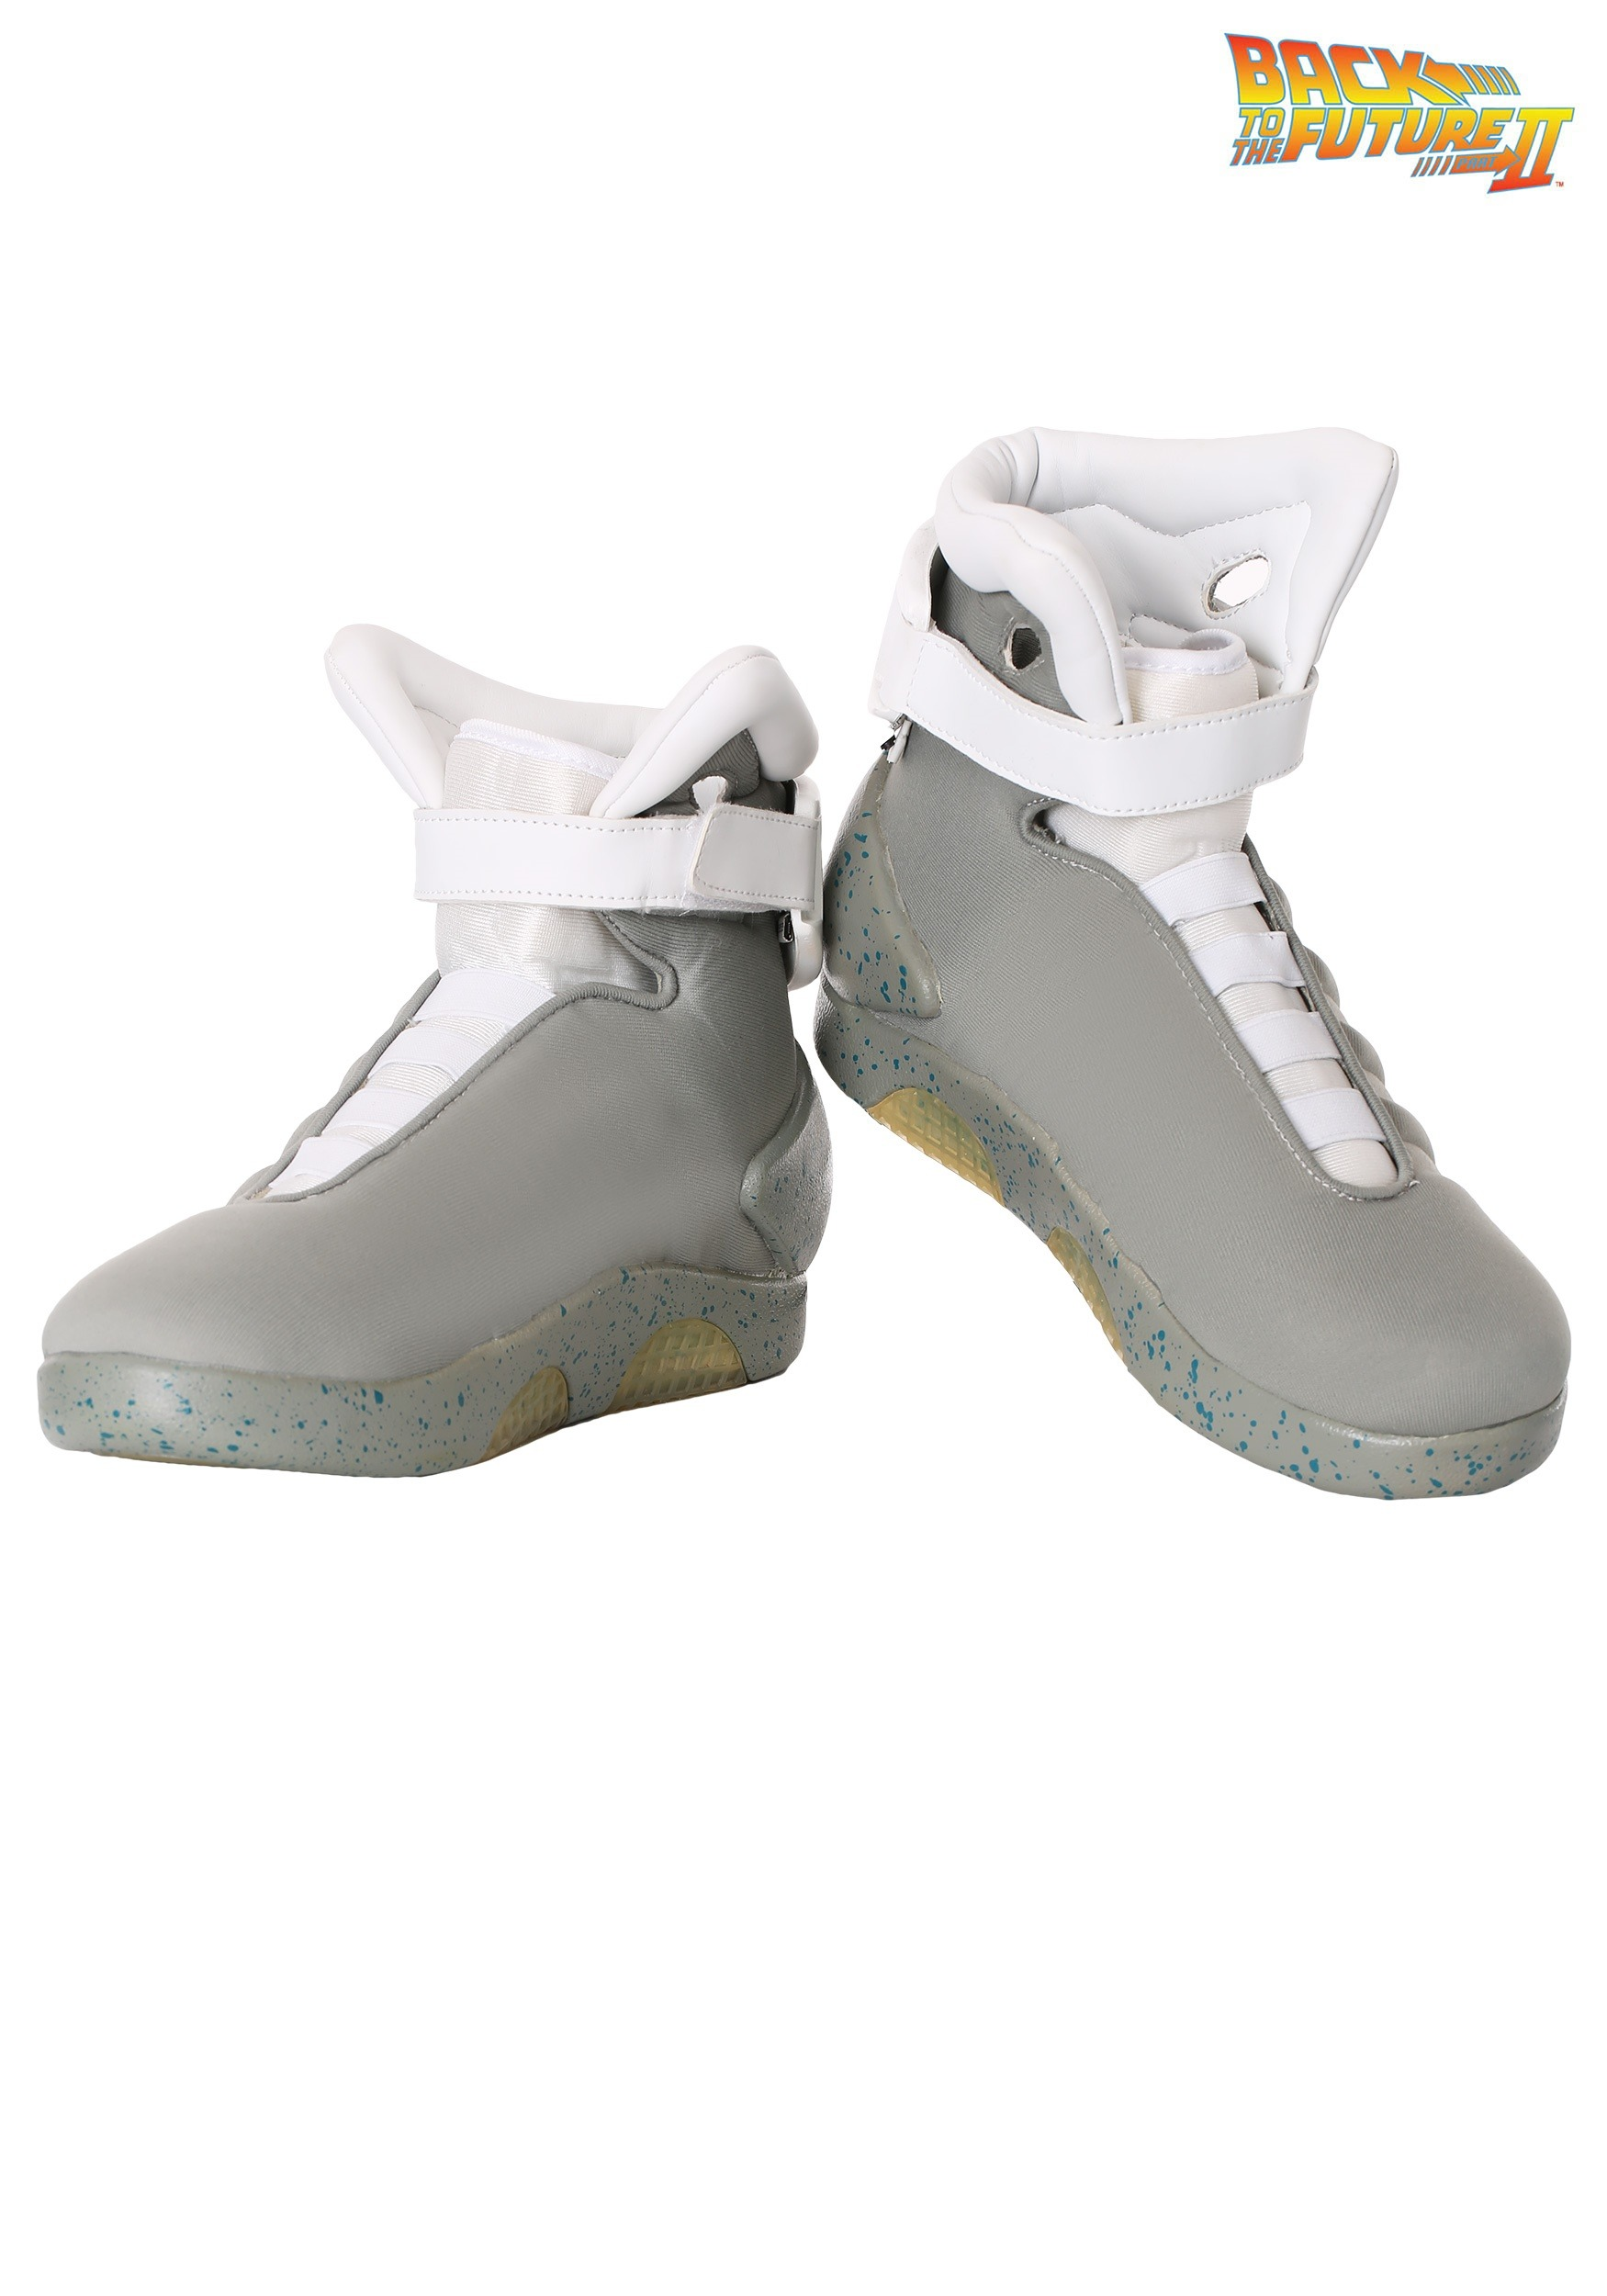 official photos c2aea 42719 Back to the Future 2 Light Up Shoes